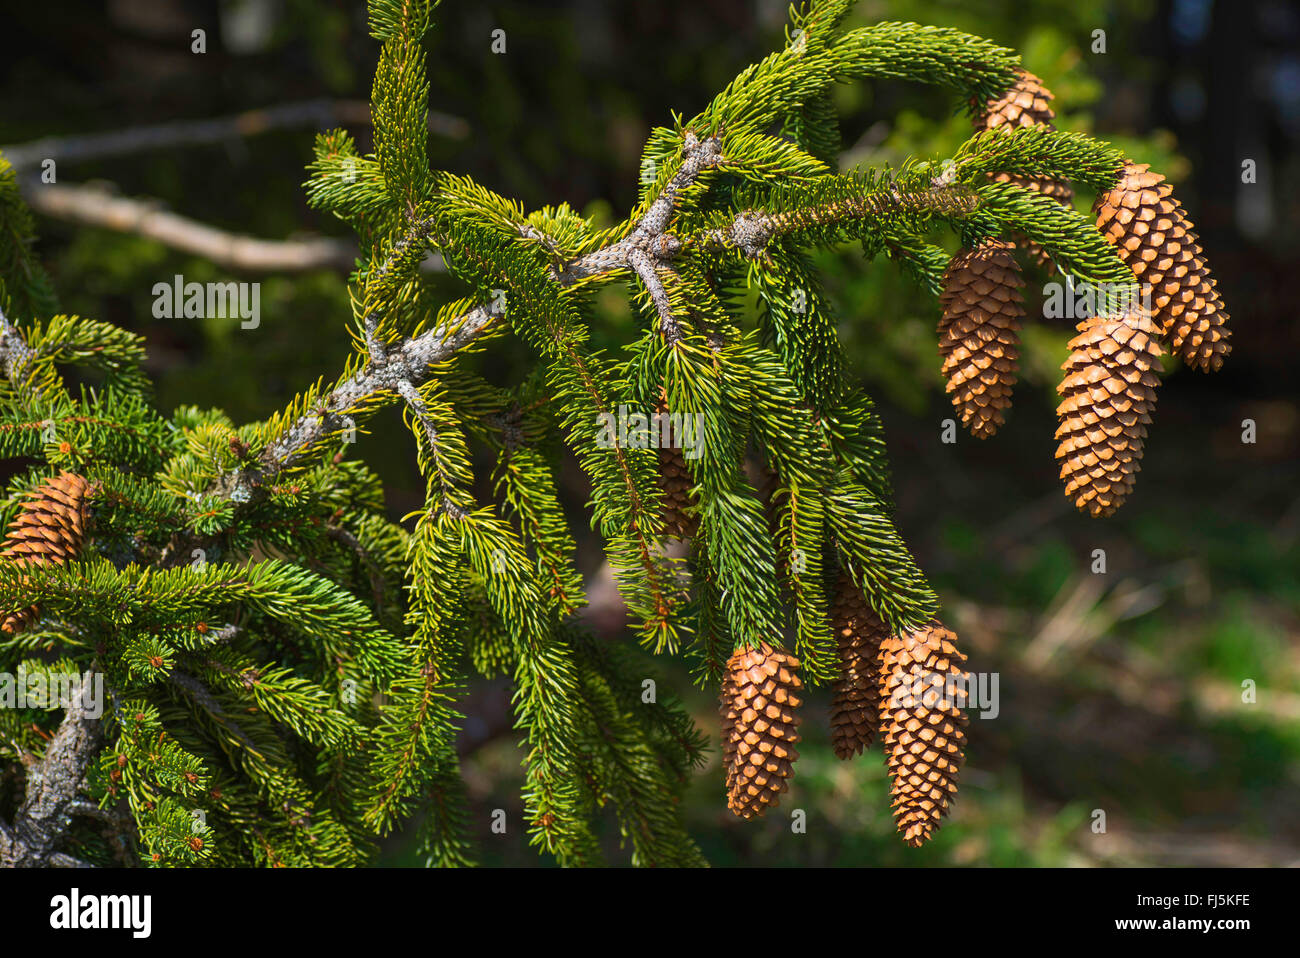 Norway spruce (Picea abies), open spruce cones on a spruce branch, Germany, Bavaria, Oberbayern, Upper Bavaria - Stock Image